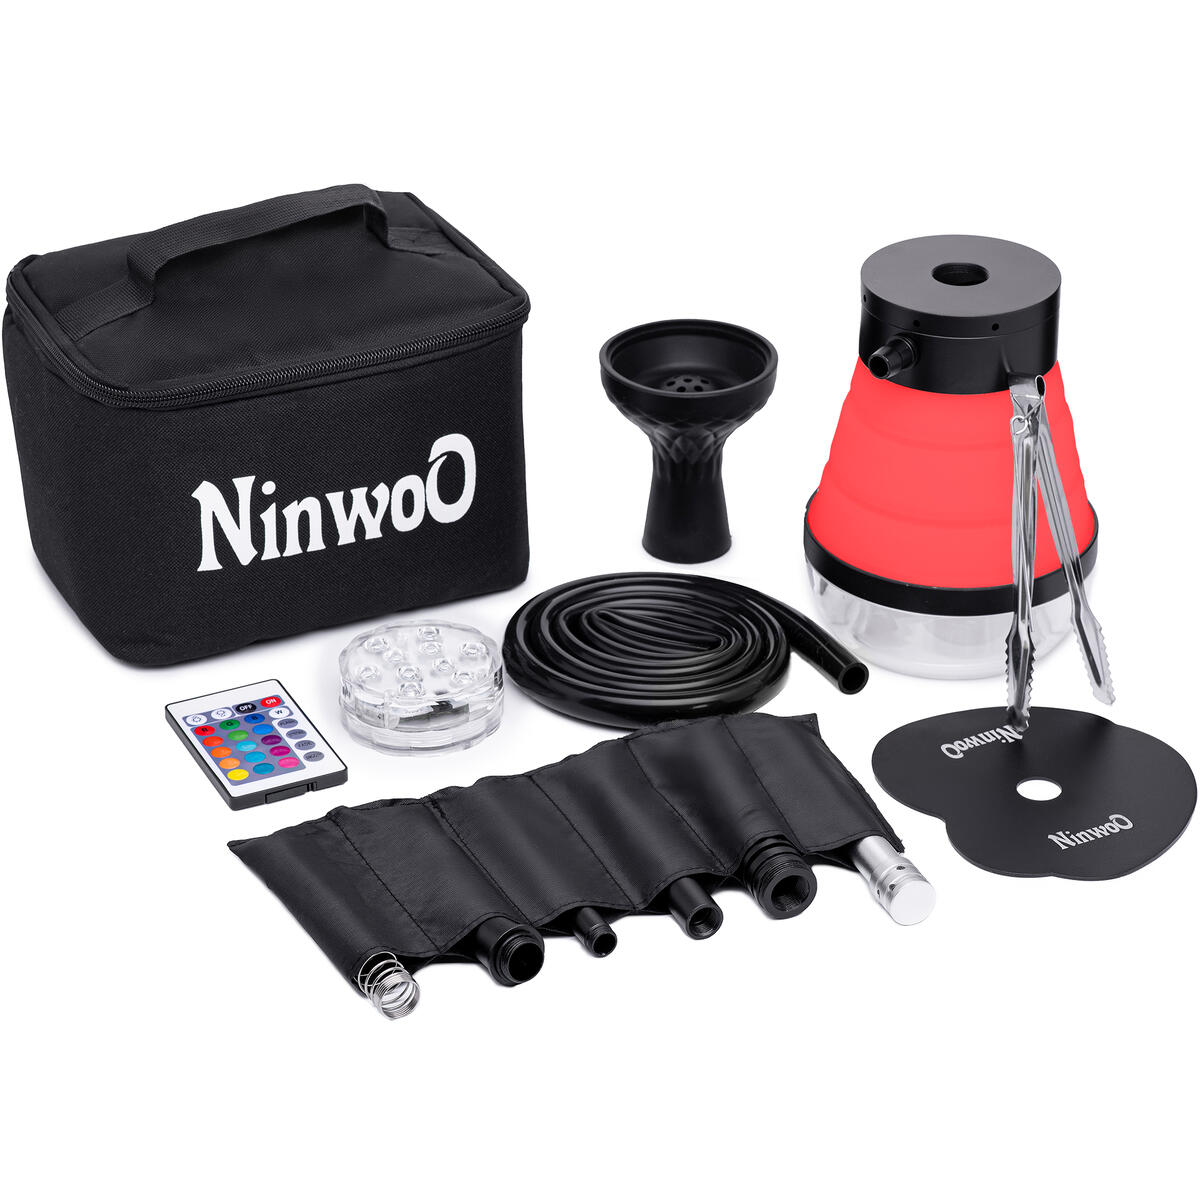 Hookah Set – Premium NinwoO Portable Hookah with Protective Bag Case – Best Travel Shisha with LED Light Remote Controller and Stable Adjustable Vase - Better Filtration with Diffuser - Red